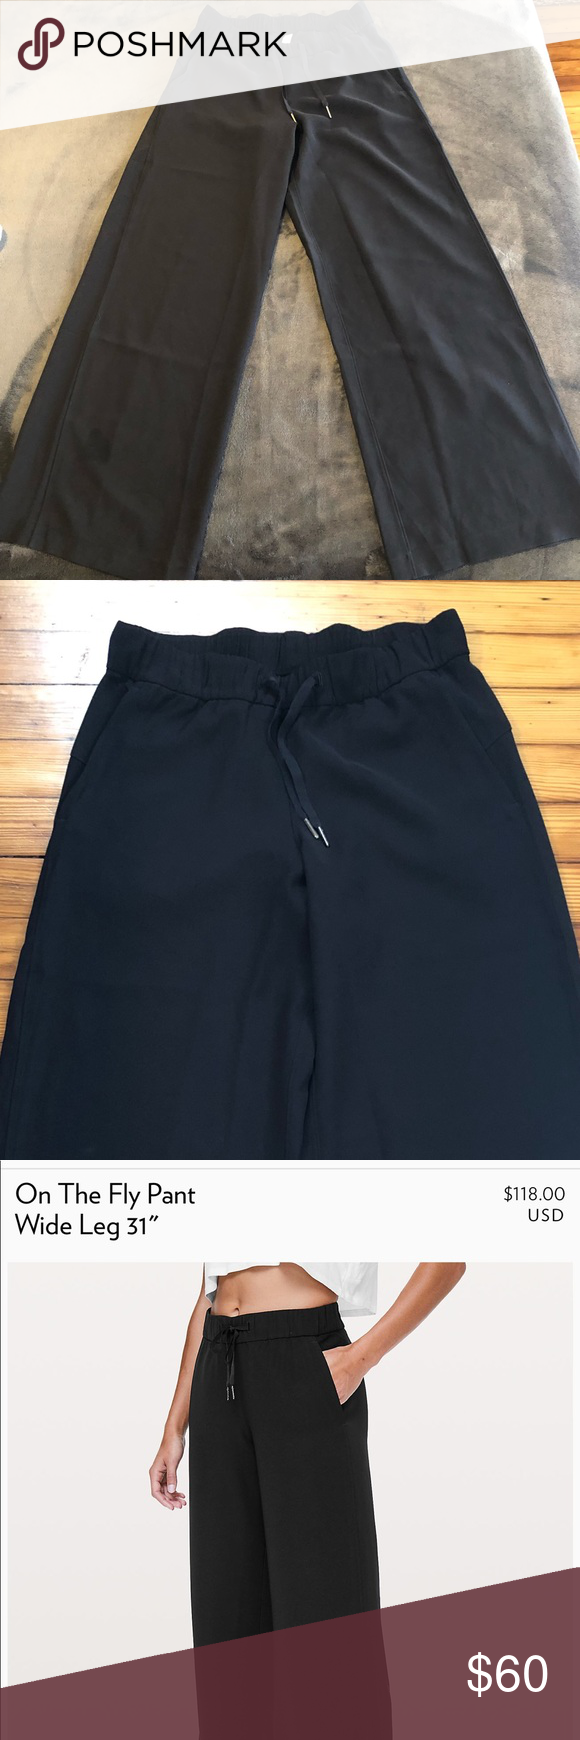 080e6c2091 Wide Leg On The Fly Pants from Lululemon. Currently retails for $118,  selling for $60. Only worn twice. lululemon athletica Pants Wide Leg